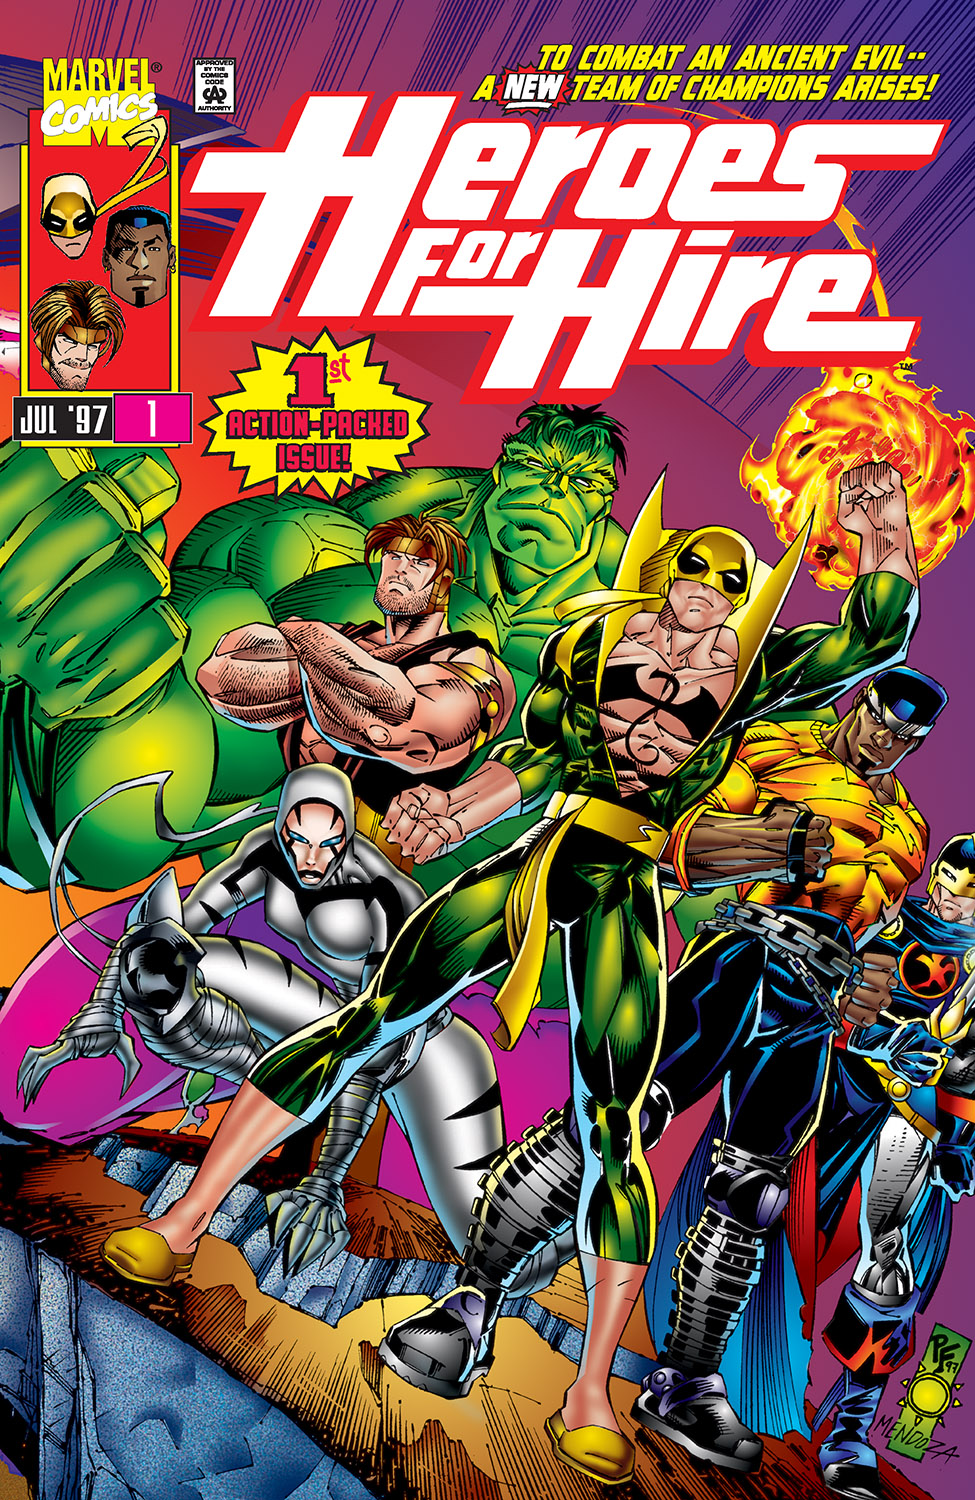 Heroes for Hire (1997) #1